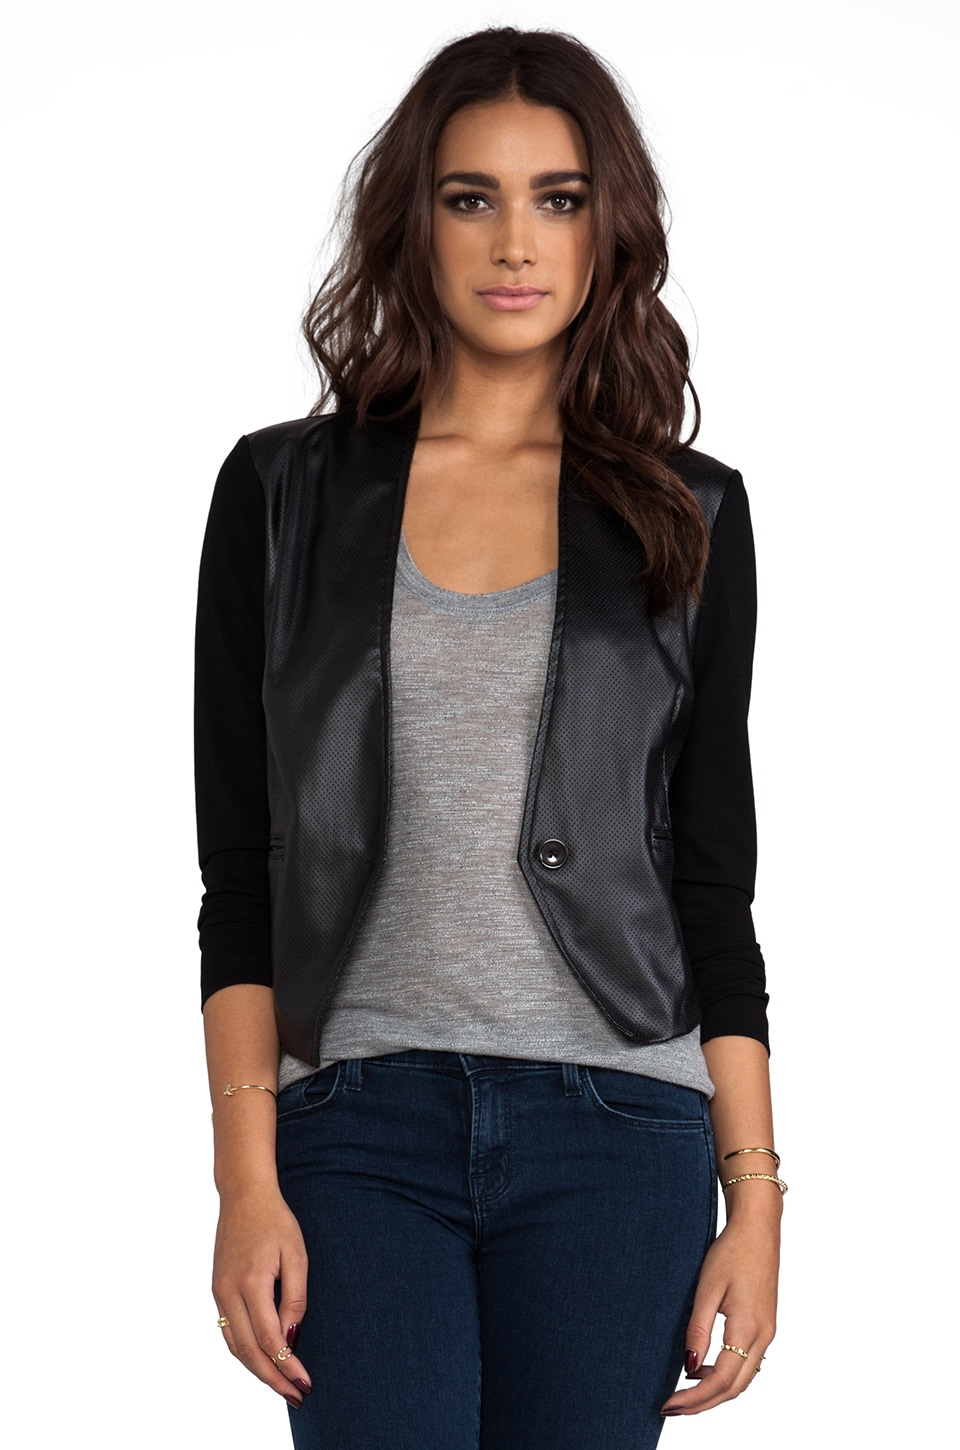 Bobi Blazer with Leather in Black & Black